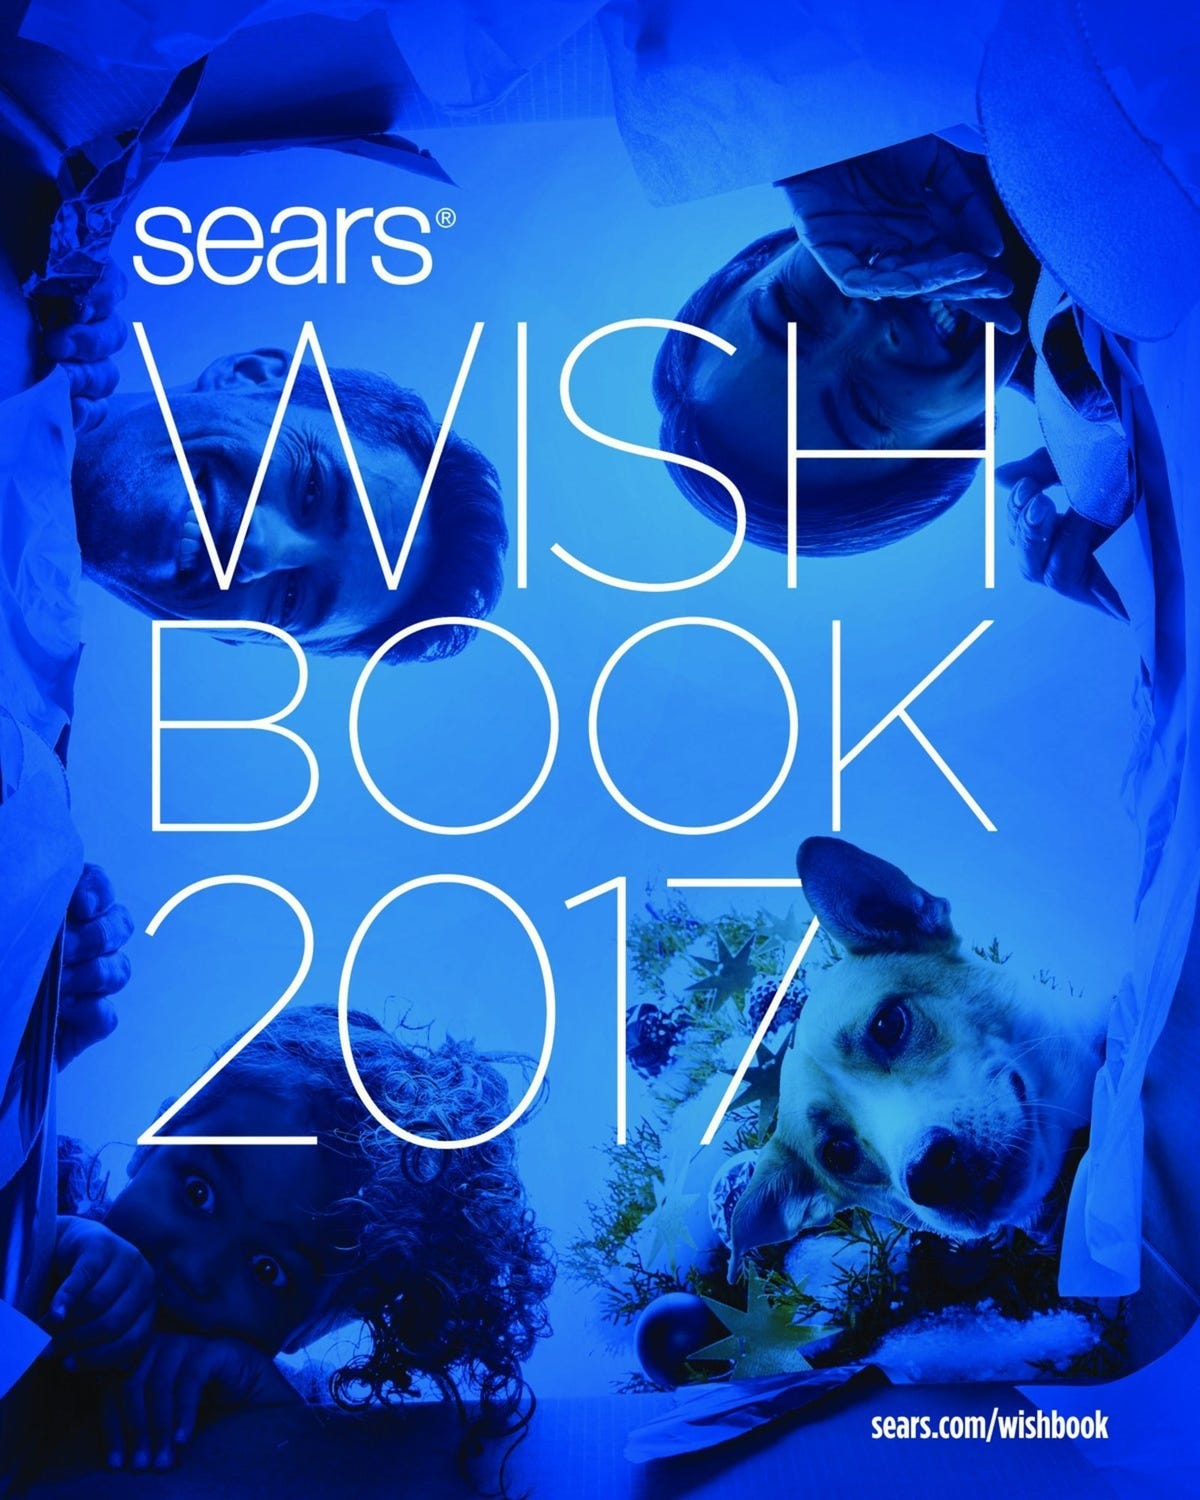 Sears brings back iconic holiday Wish Book to woo shoppers